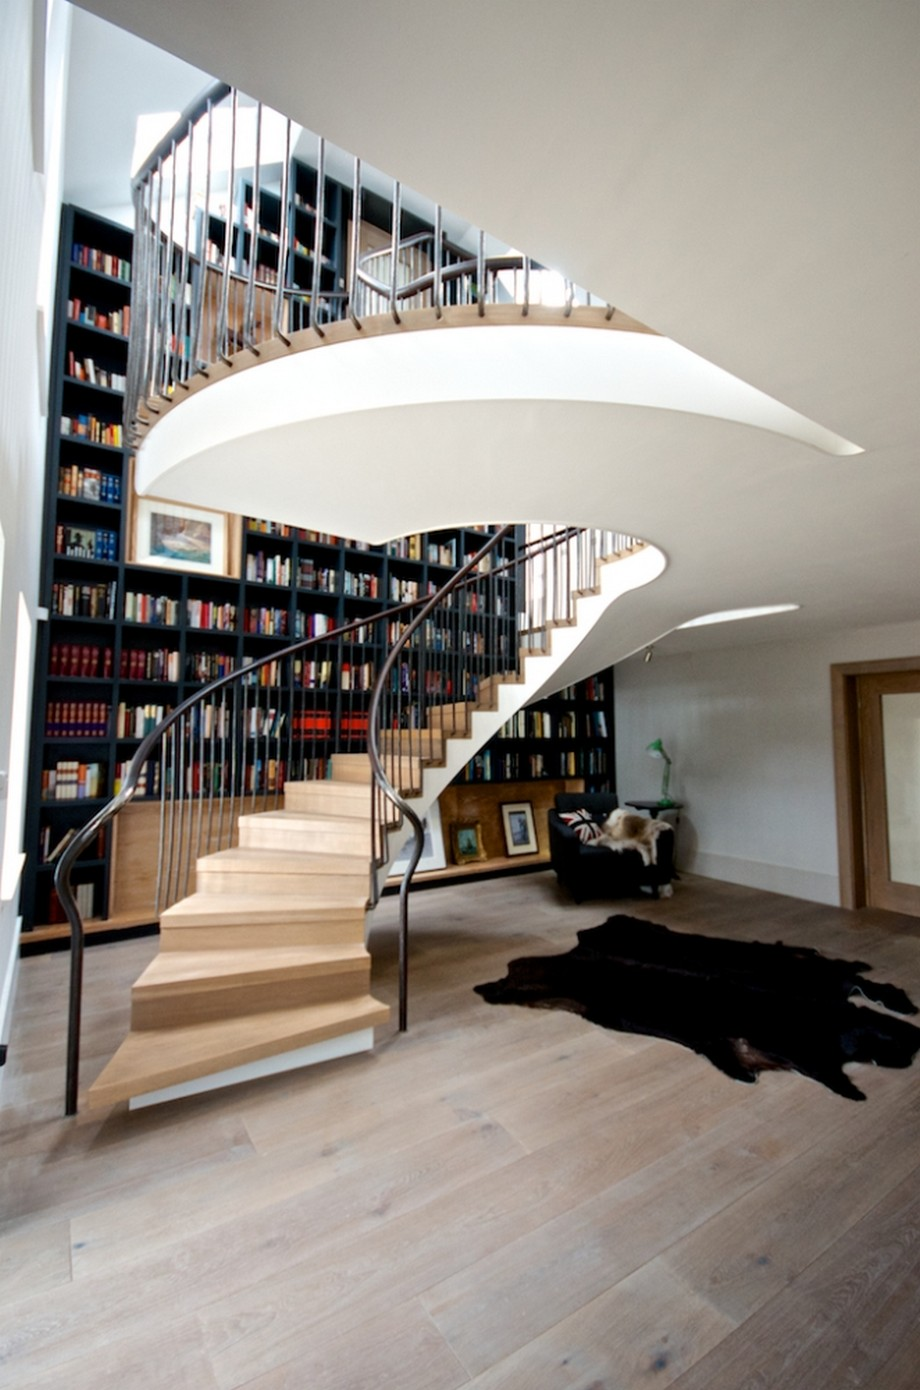 Whirling Staircase Design With Jaw Dropping Size In